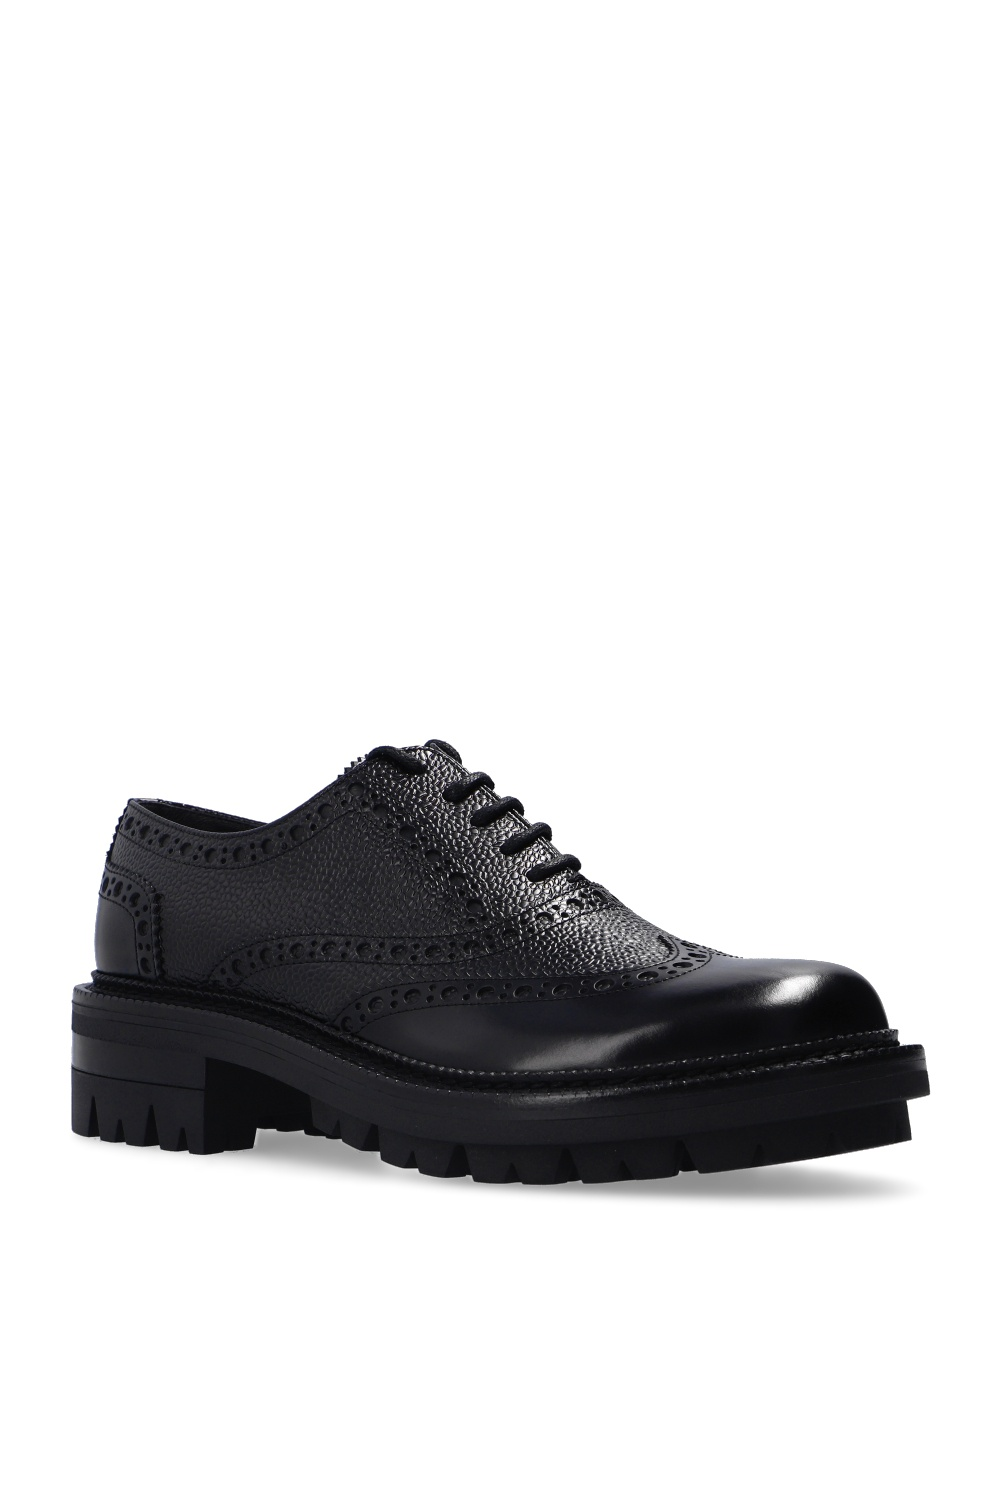 Dsquared2 Leather derby shoes